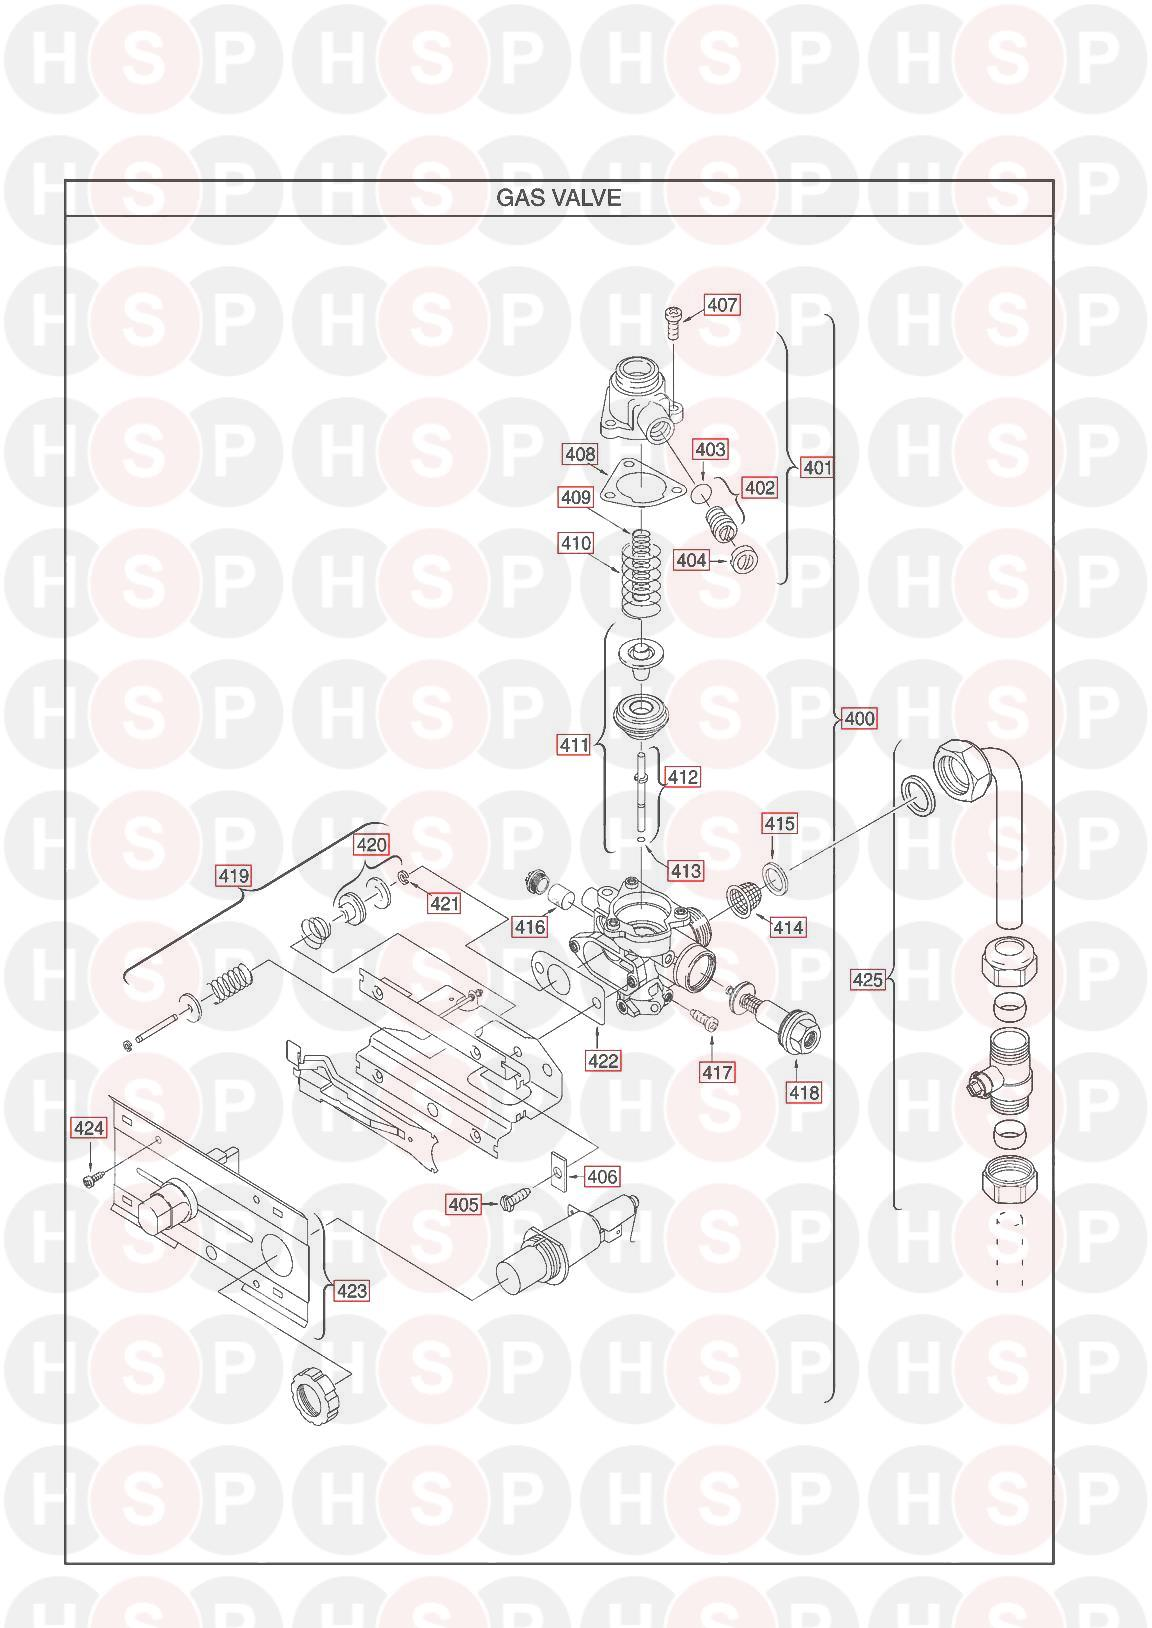 Main Multipoint BF WATER HEATER (GAS VALVE) Diagram